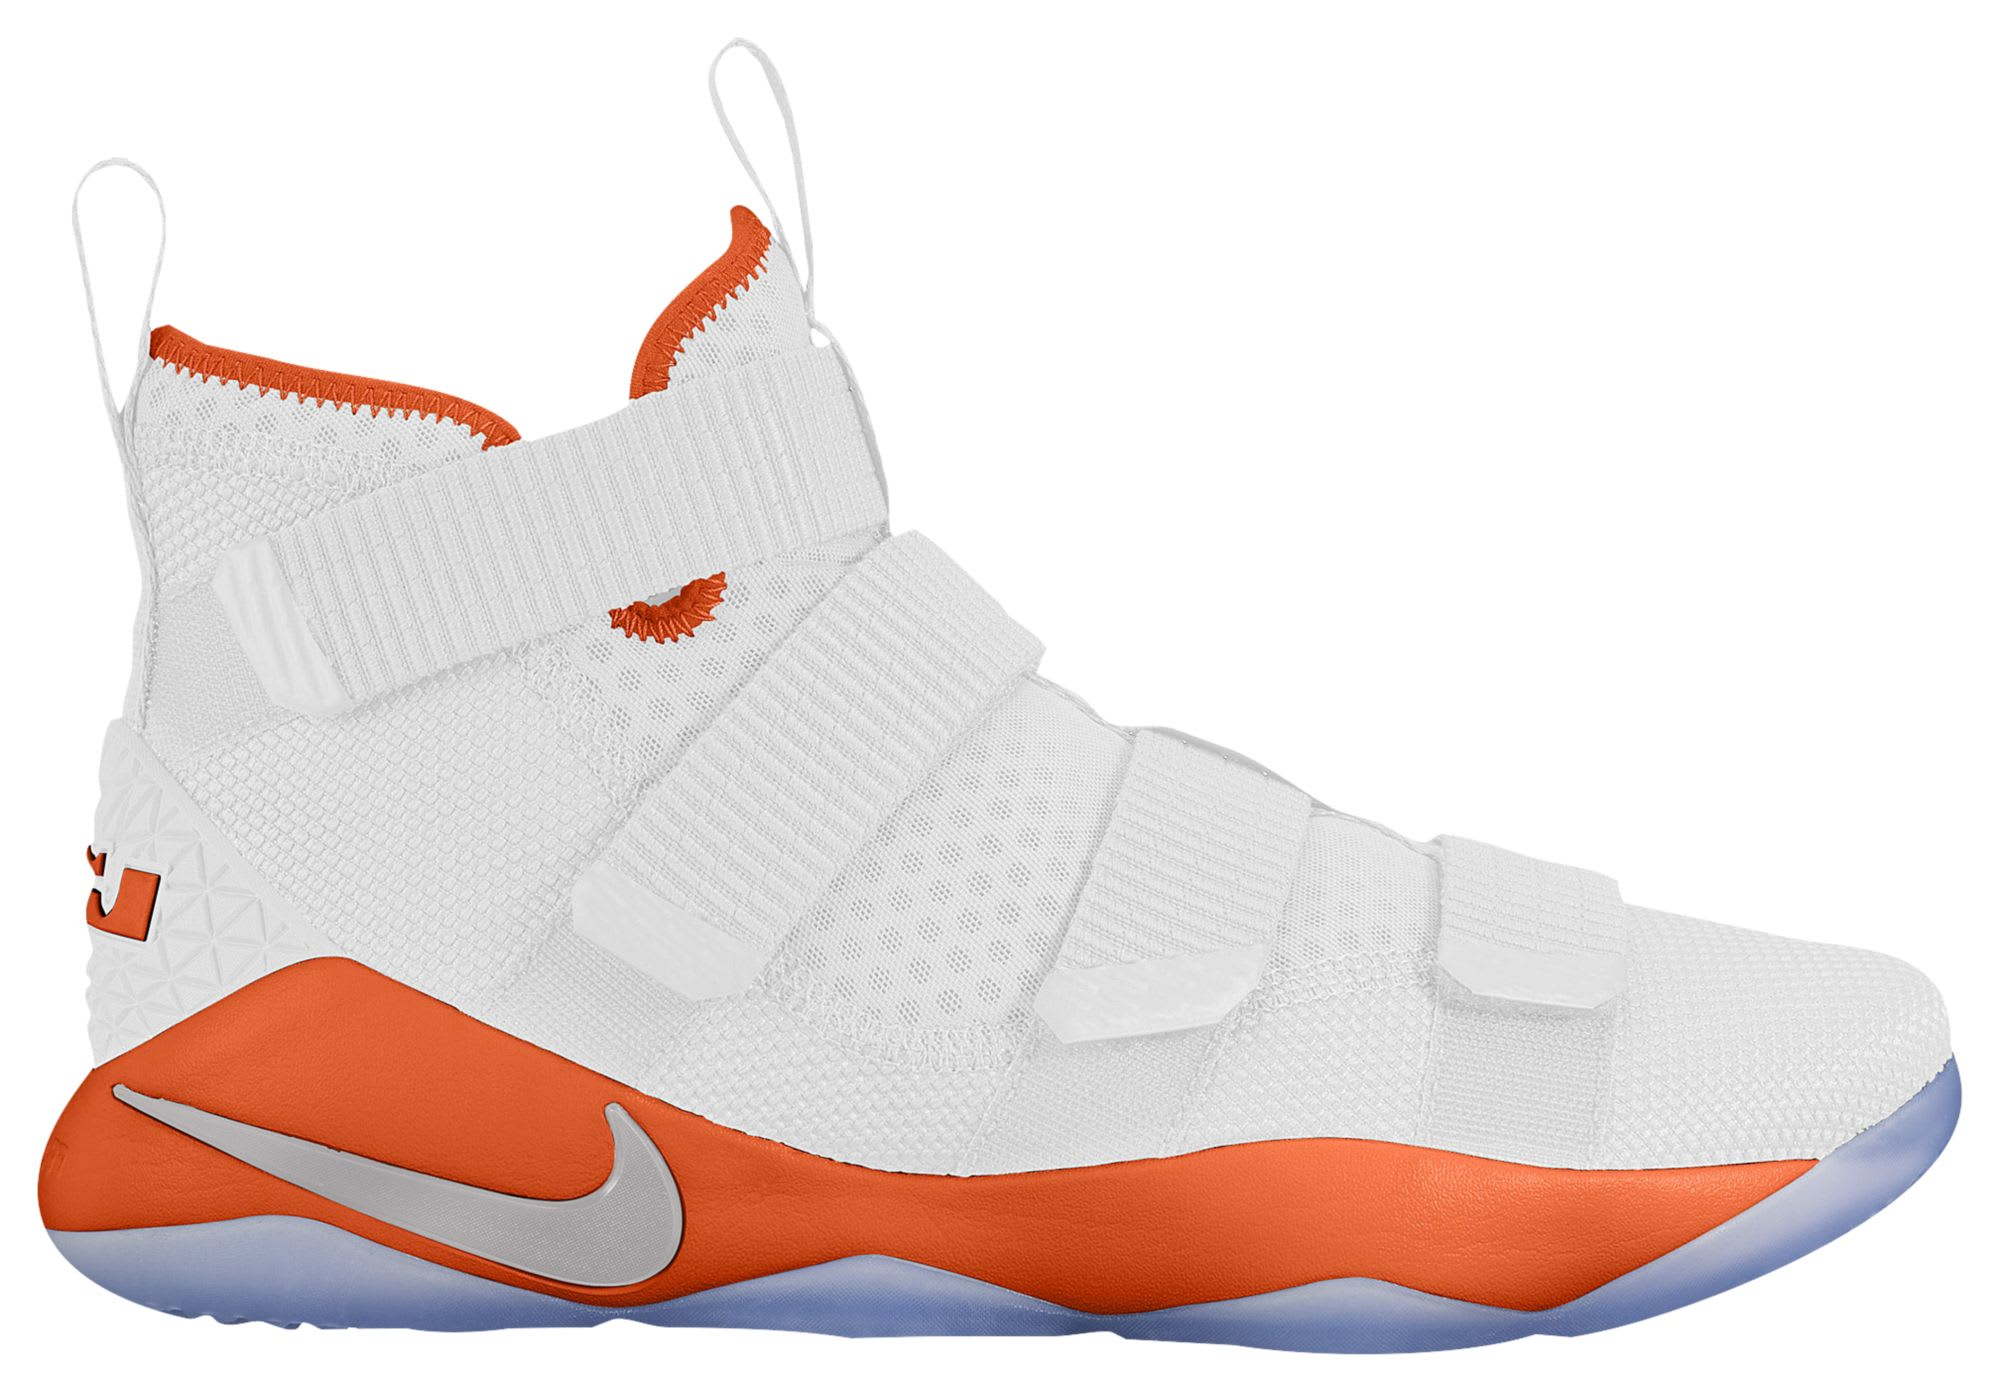 cdec4c0caee order cheap for sale nike zoom lebron soldier 8 black red dark grey online  fe0d3 5d26a  new arrivals nike lebron soldier 11 tb white orange 68e59 570ae